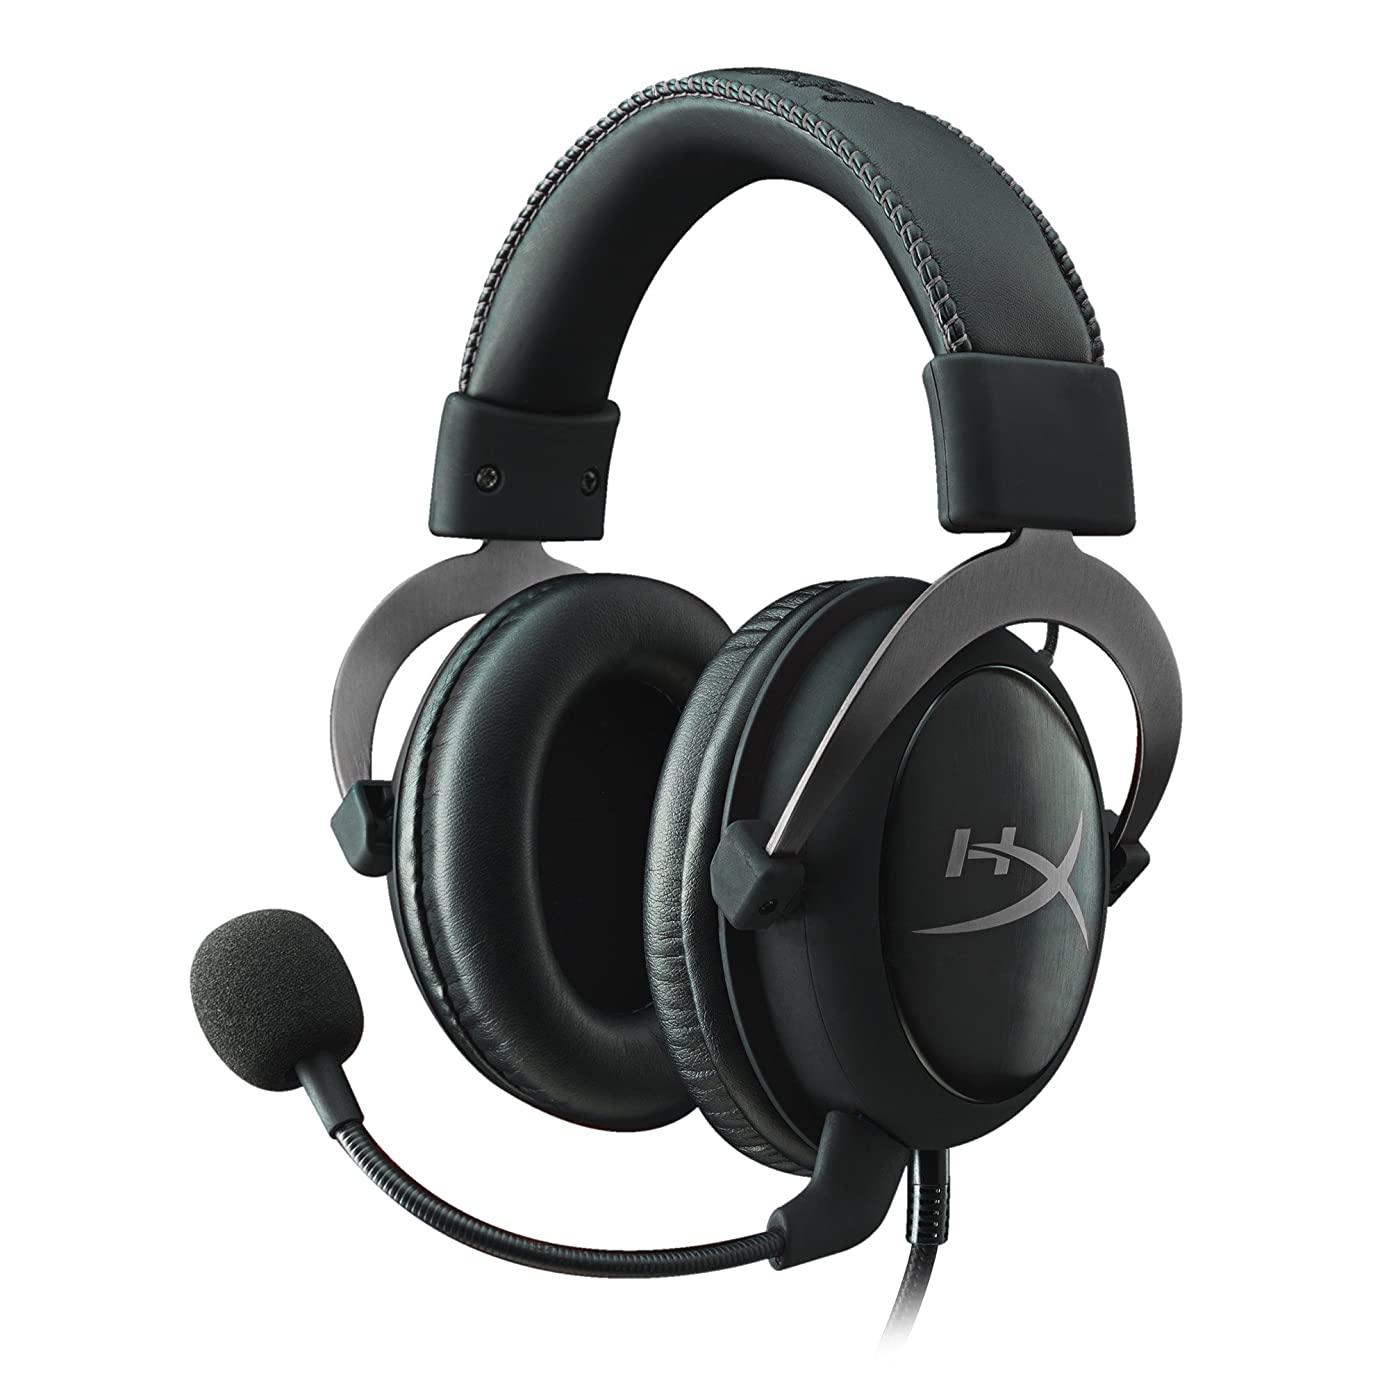 HyperX Cloud II Gaming Headset - 7.1 Surround Sound - Memory Foam Ear Pads - Durable Aluminum Frame - Works with PC, PS4, PS4 PRO, Xbox One, Xbox One S - Gun Metal (KHX-HSCP-GM)